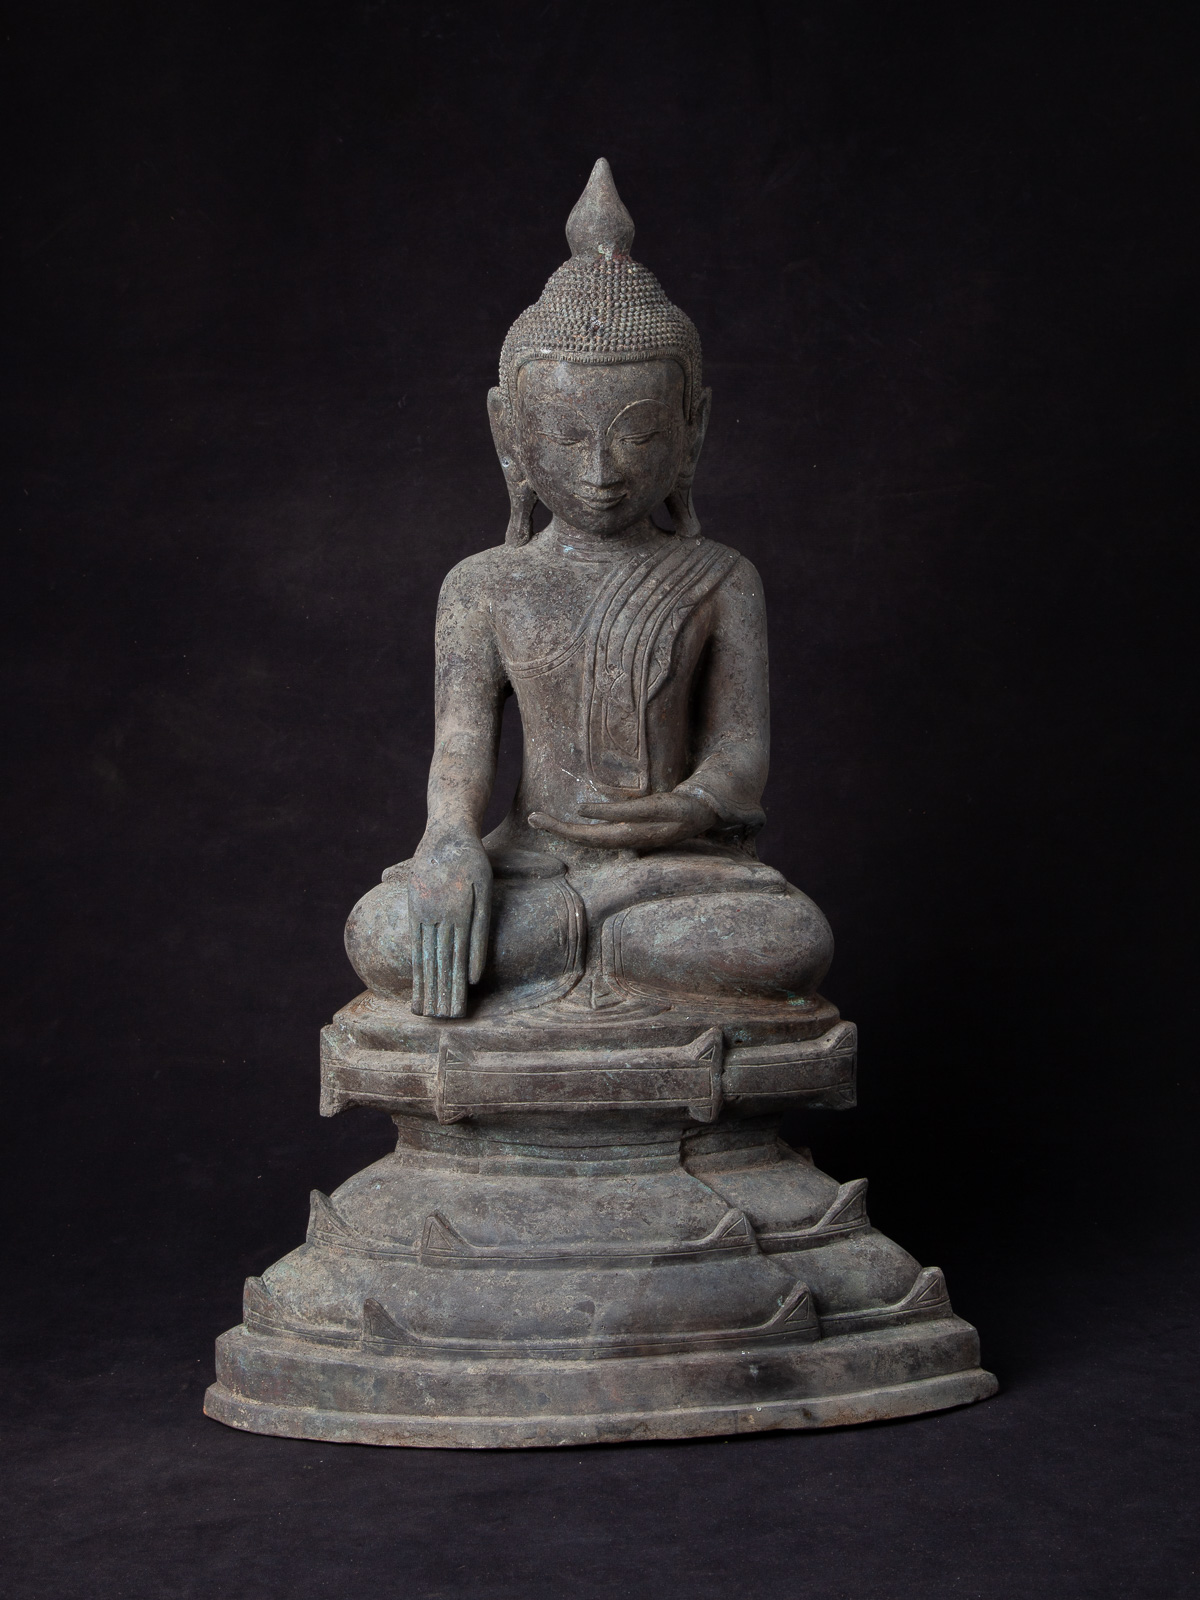 Antique bronze Shan Buddha statue from Burma made from Bronze